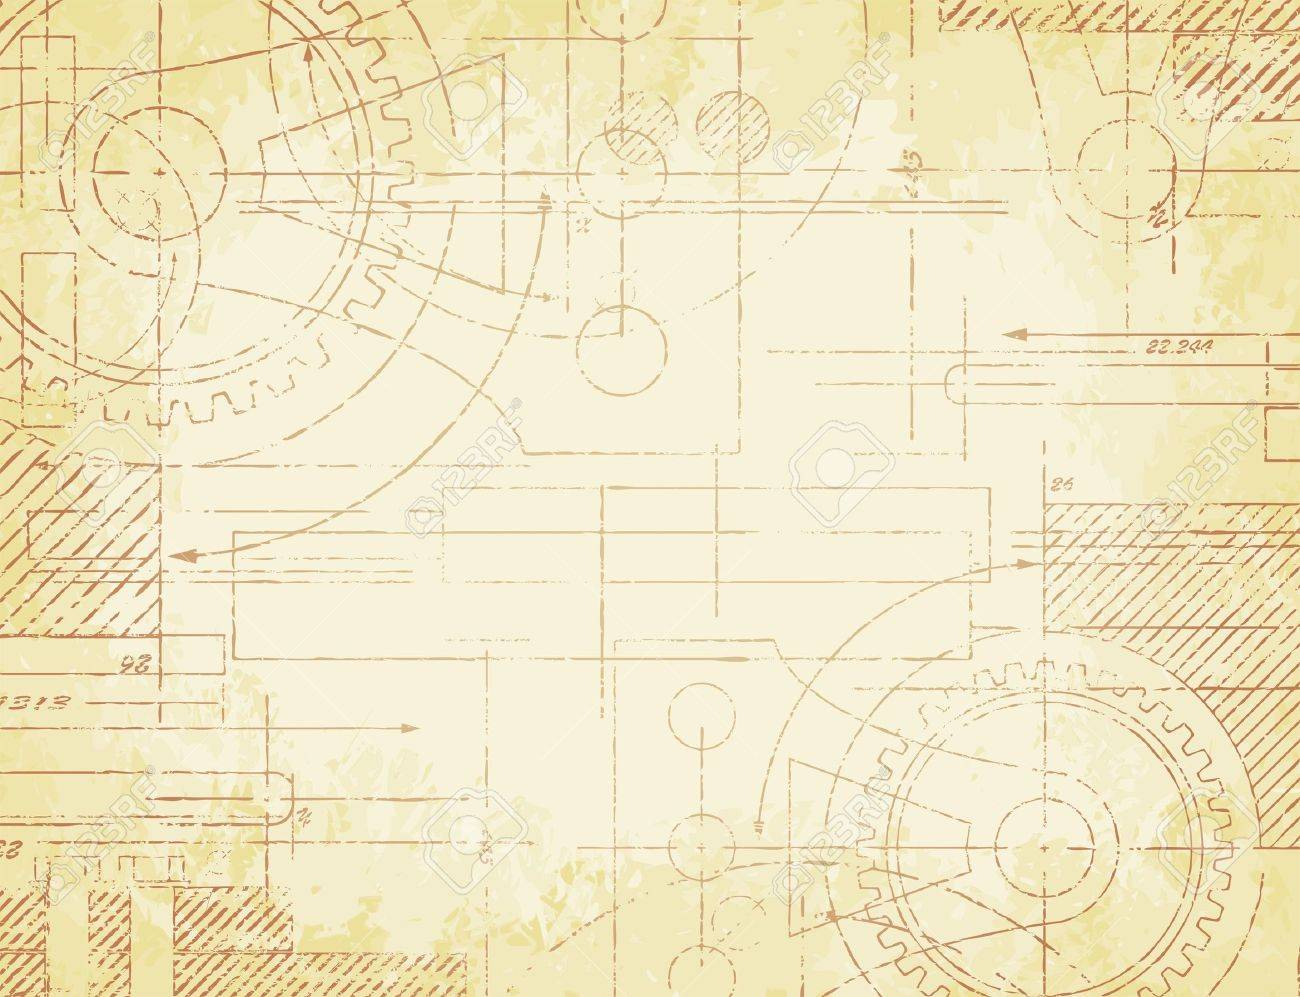 Grungy old technical blueprint illustration on faded paper grungy old technical blueprint illustration on faded paper background stock vector 17923653 malvernweather Image collections